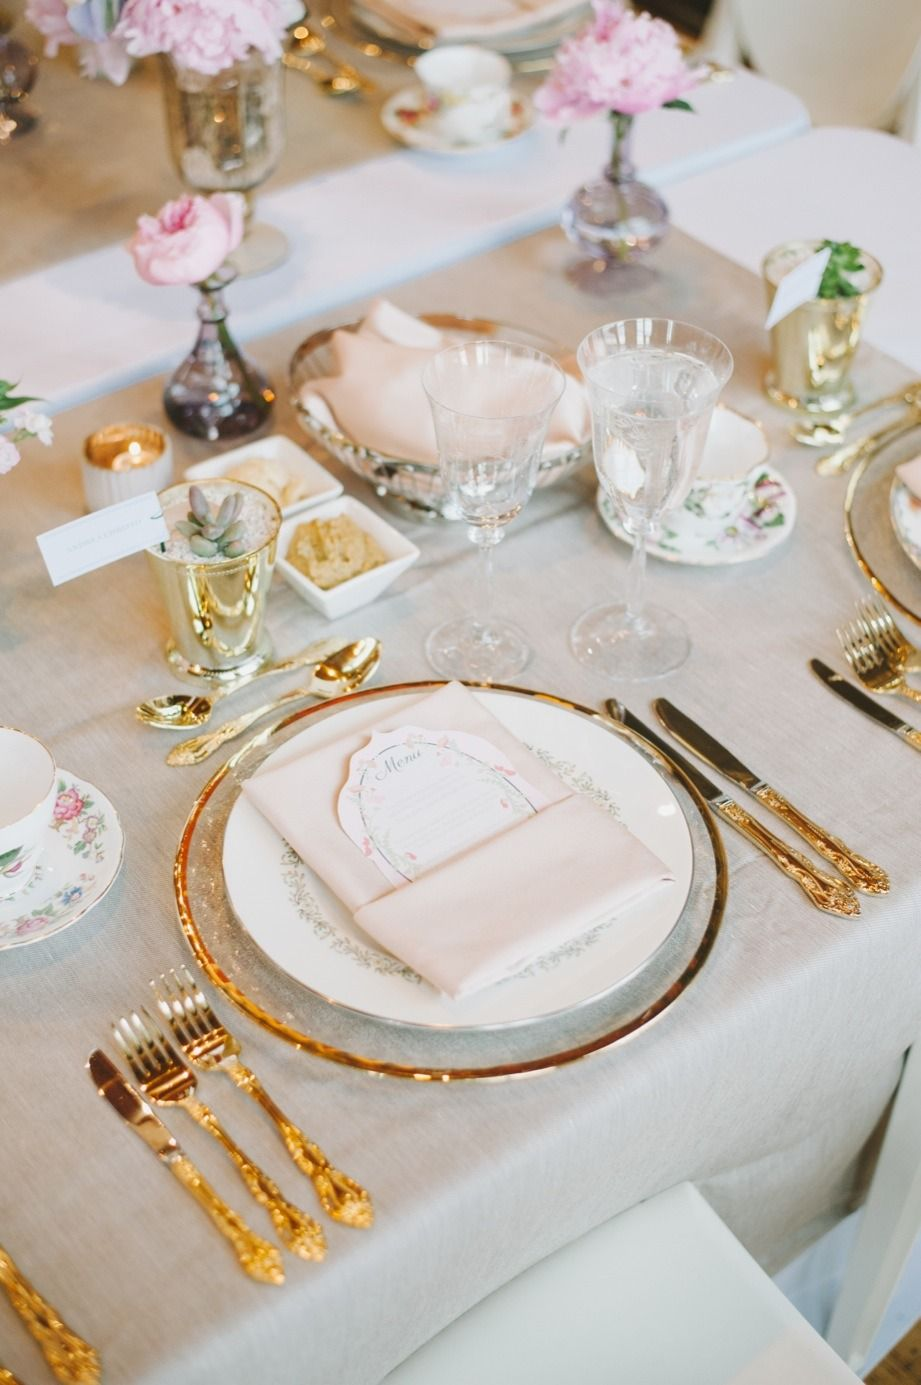 Place Setting Gold-Rimmed Chargers + Vintage Dinner Plate + Gold Flatware + Dainty Menu | Photography Mango Studios & Toronto Wedding at the Burrough\u0027s Building from Mango Studios + ...